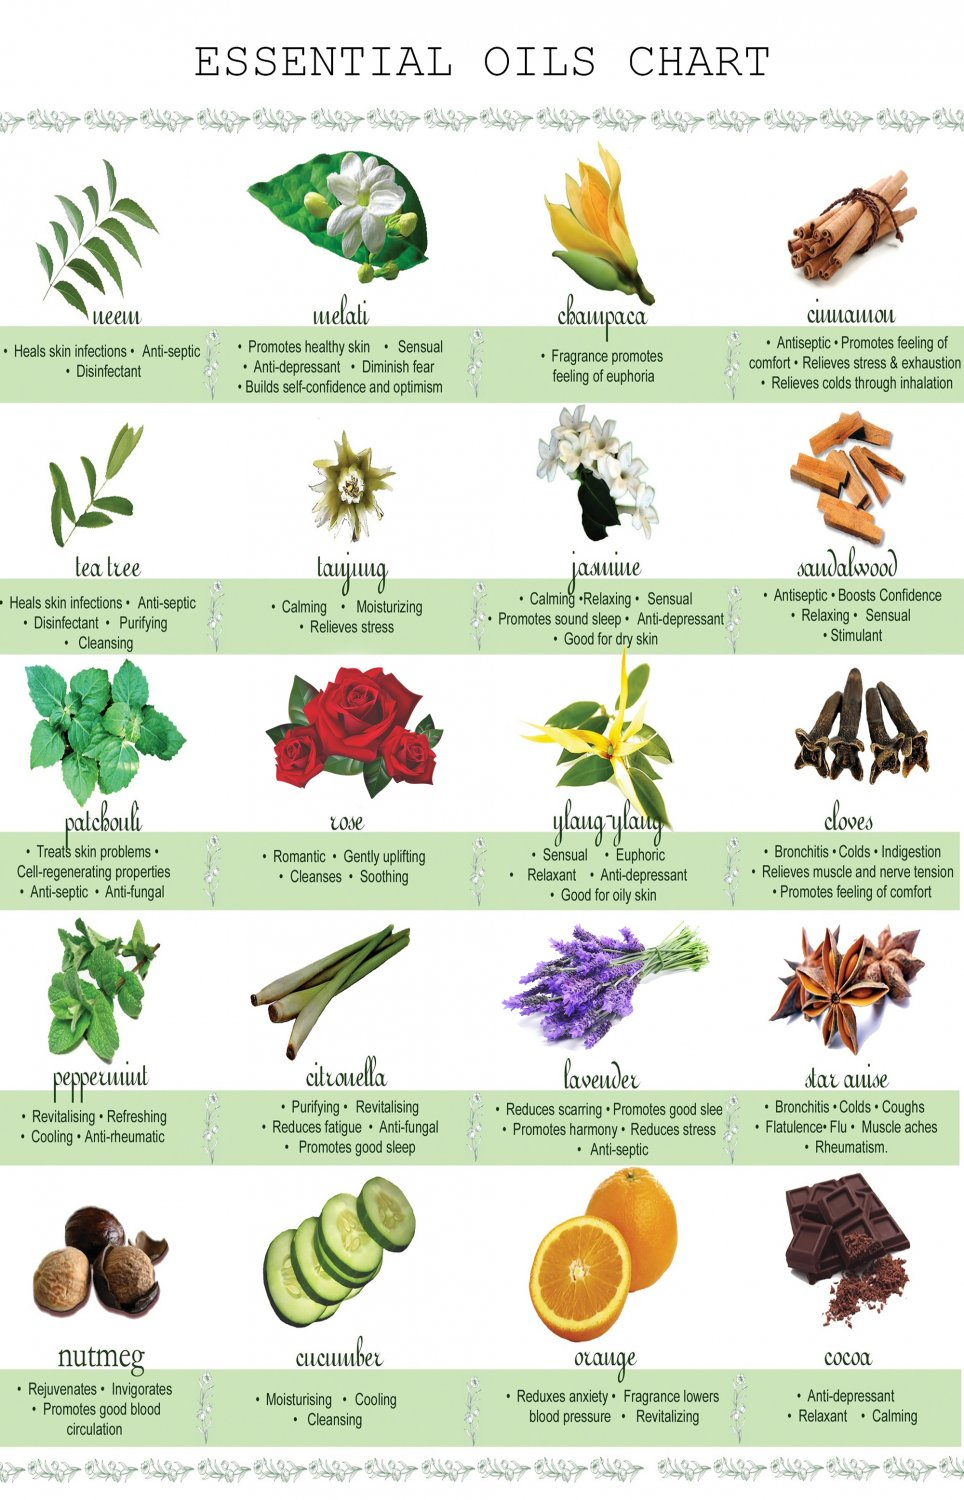 Essential Oil Chart  13x19 inches Poster Print